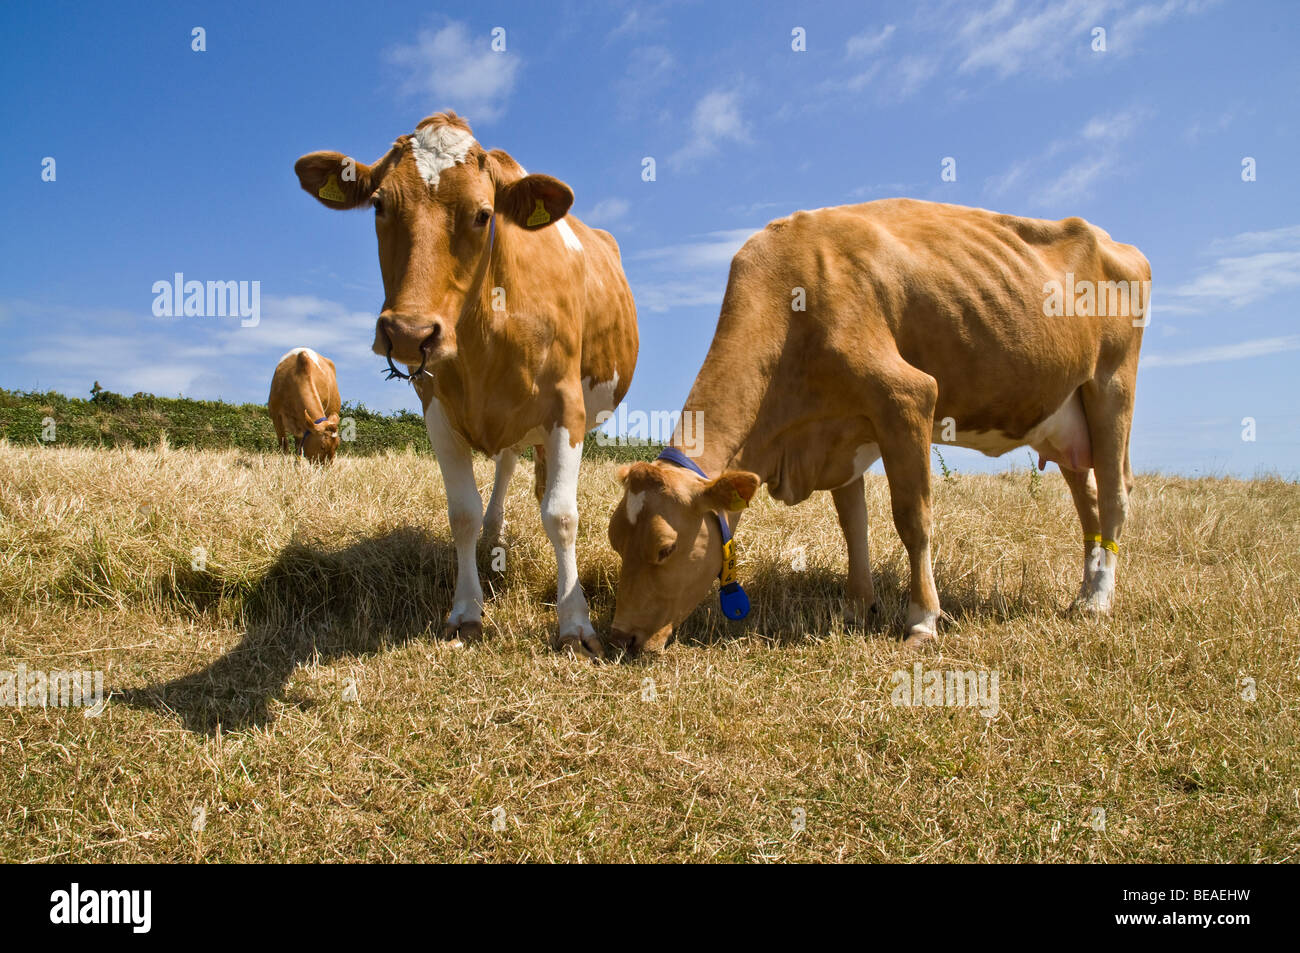 dh Guernsey cow ANIMAL GUERNSEY Guernsey cows in stubbled field dairy milking two farmland cattle - Stock Image